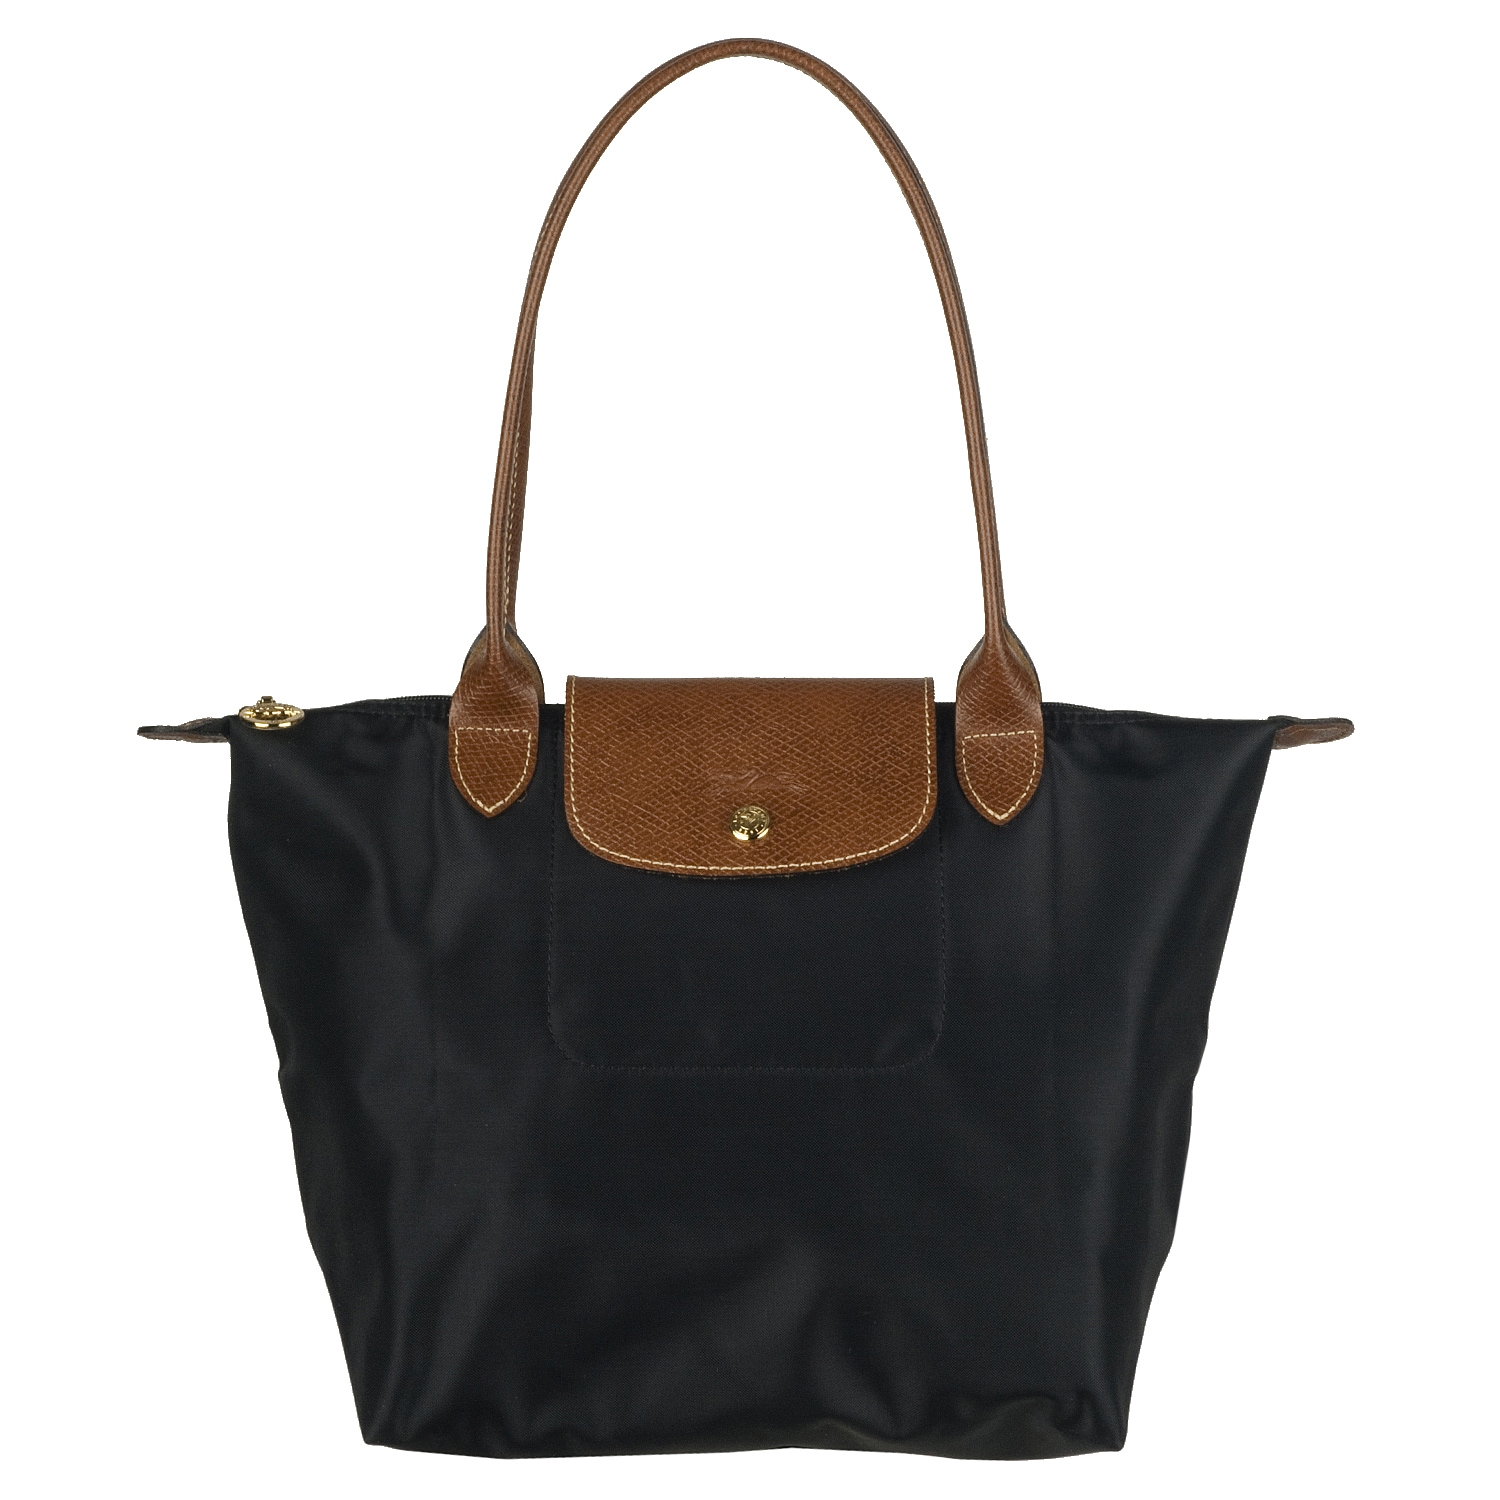 d027653ab48f Black Nylon Tote Bag Brown Leather Handles | Stanford Center for ...